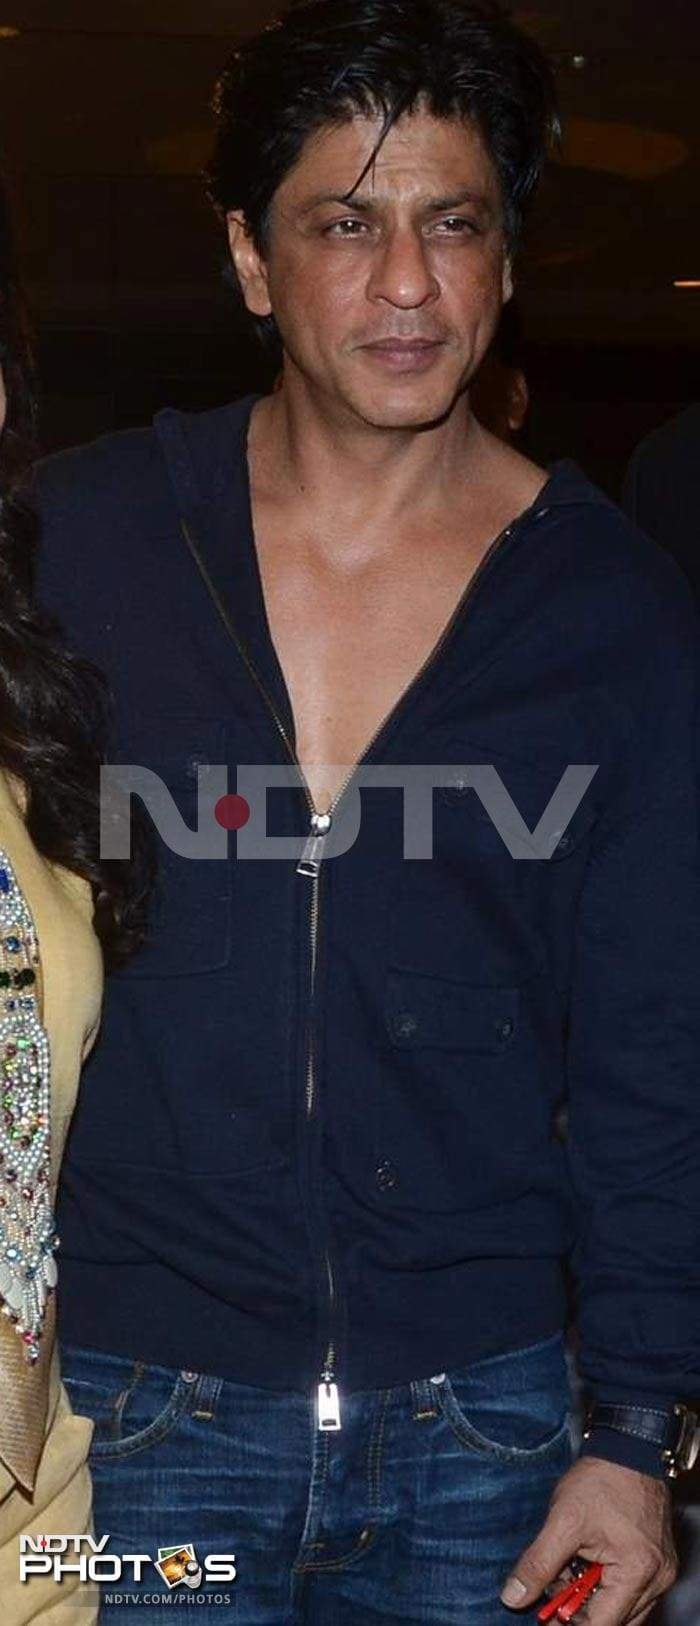 SRK's musical night out